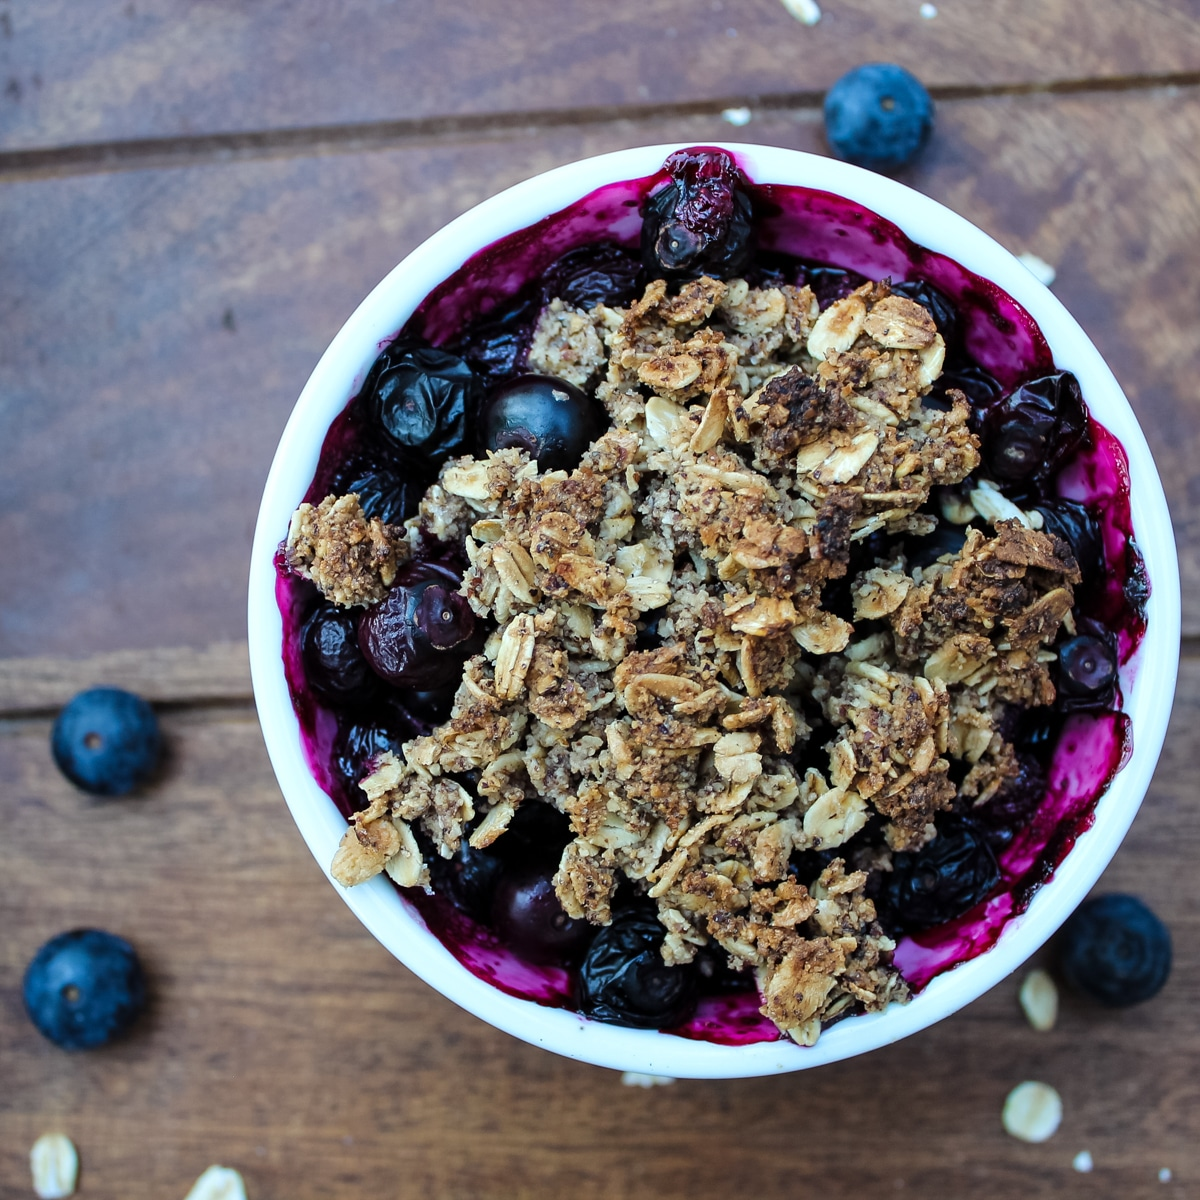 White ramekin of Blueberry Crisp with a crumble topping